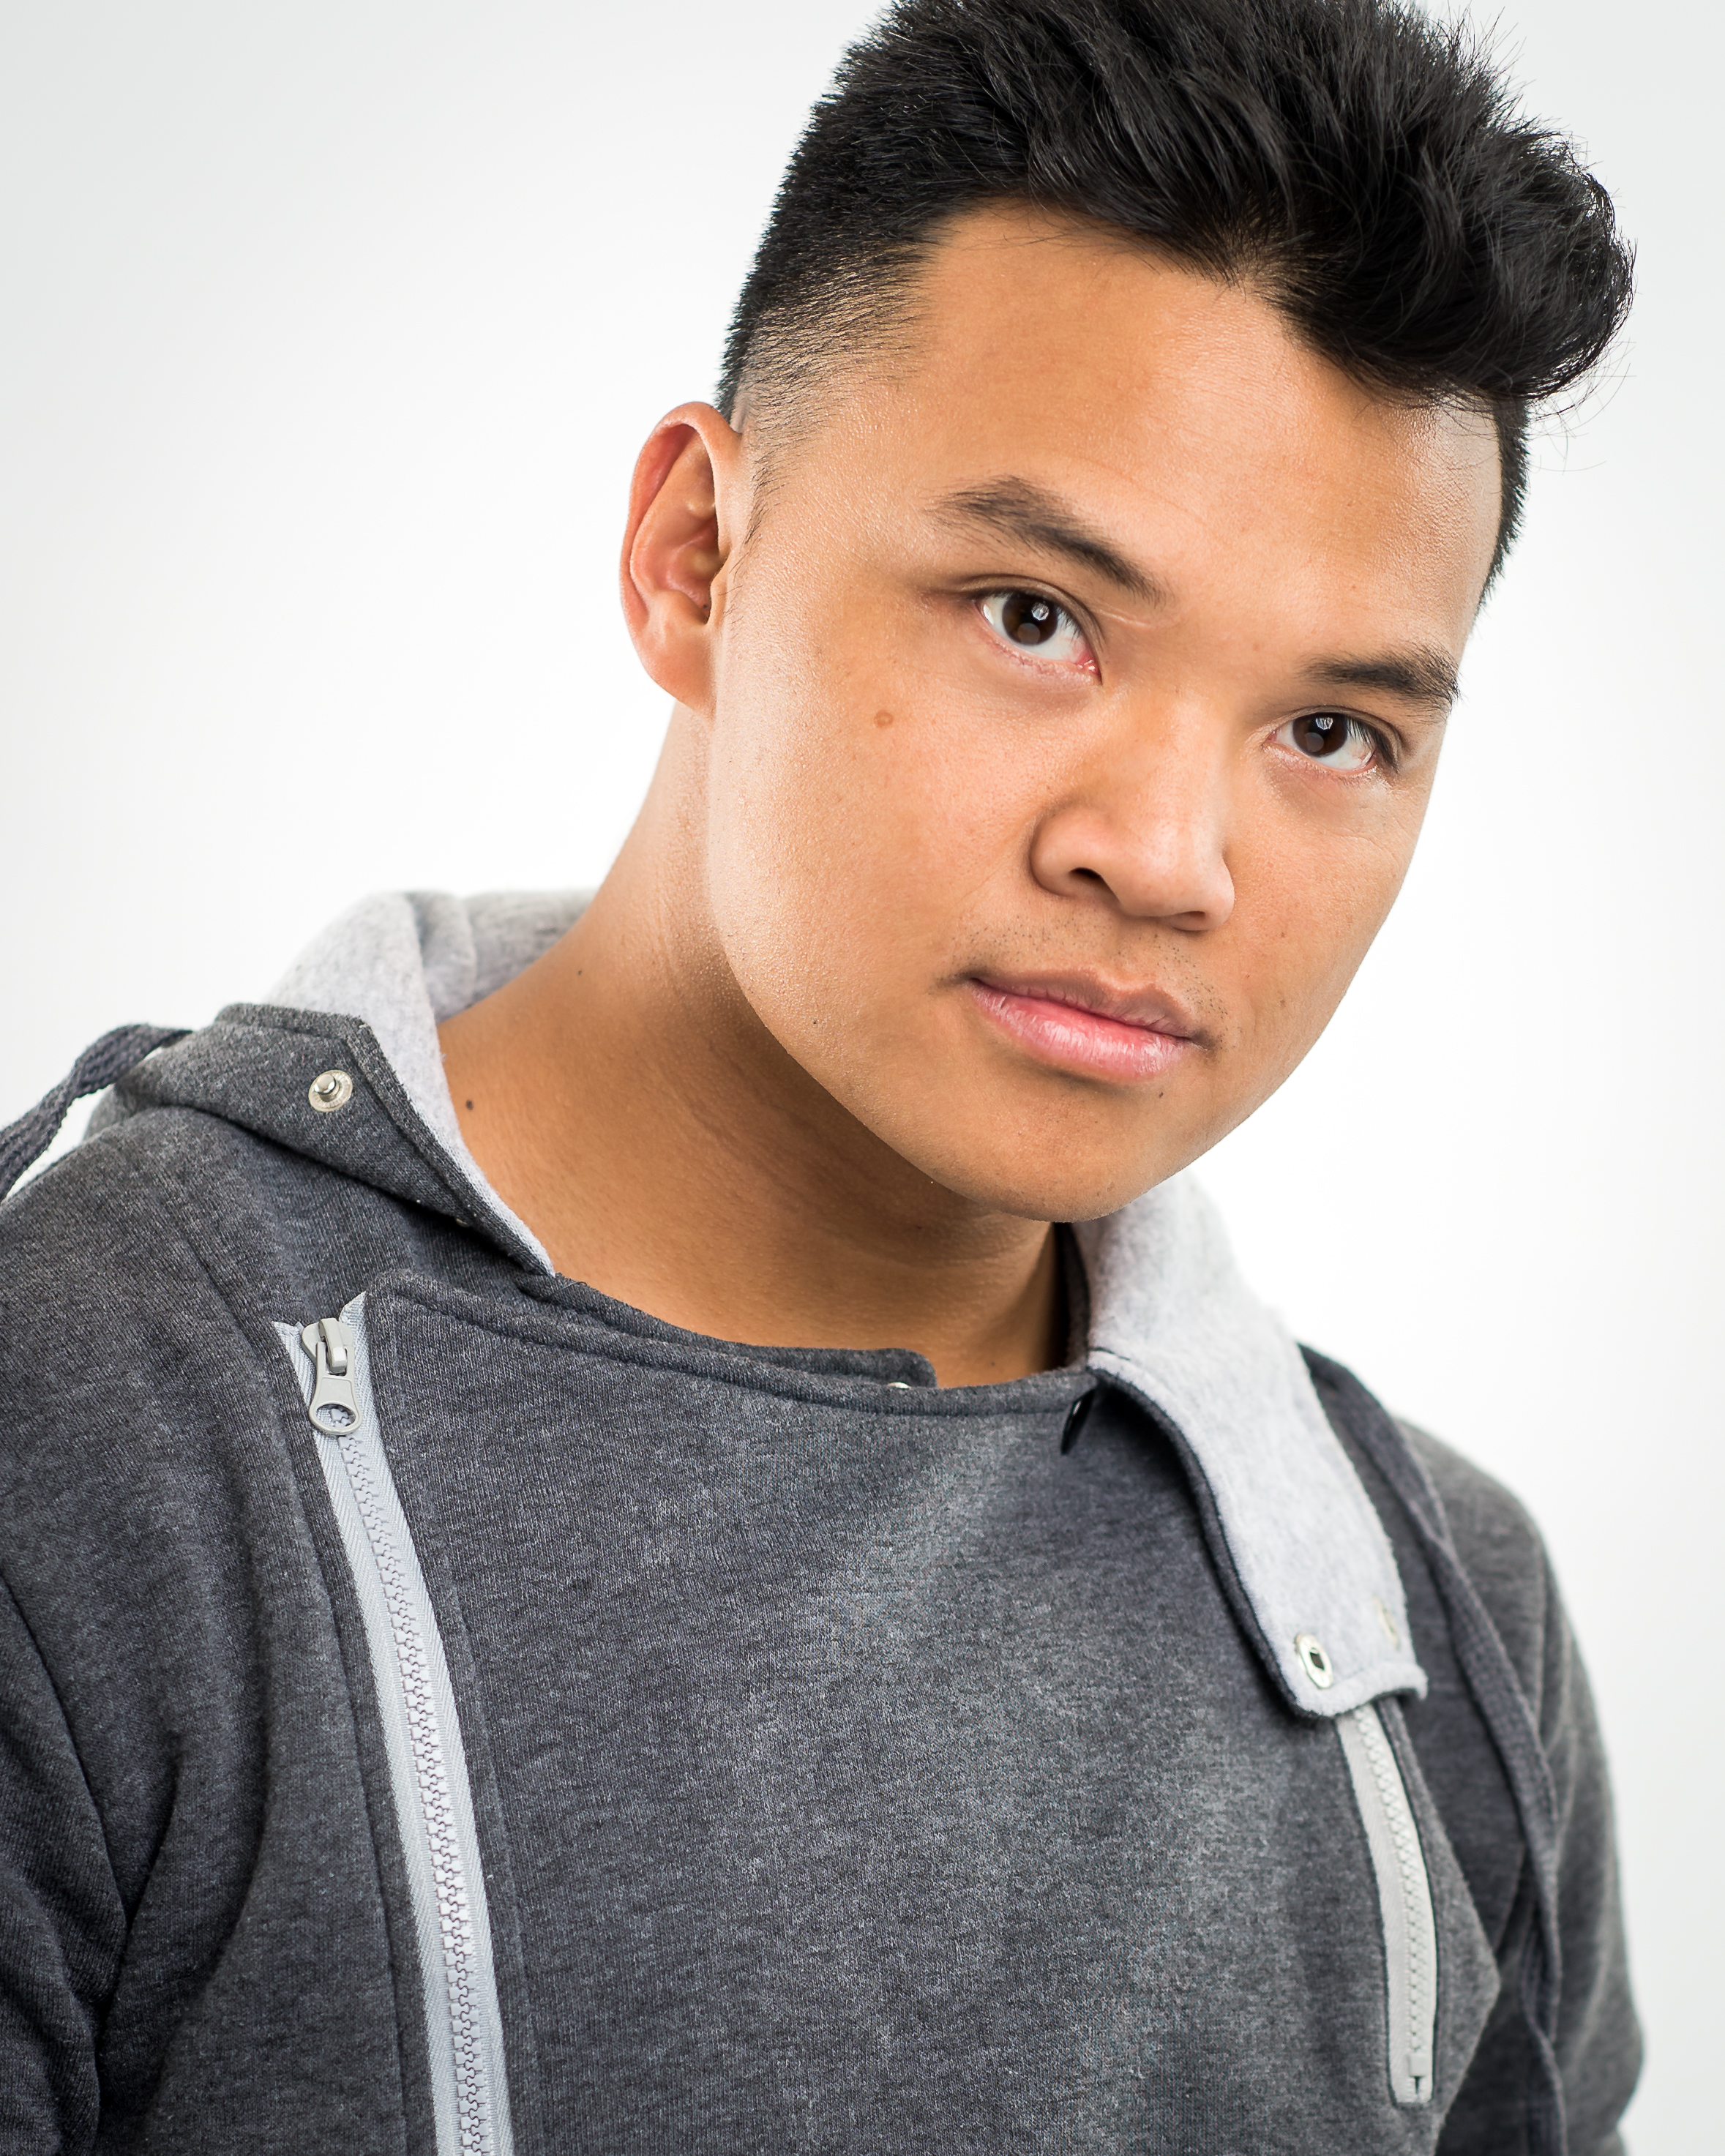 Tony Nguyen  obtained a BA in Dance at CSU, Sacramento. He has furthered his artistic and performance voice locally in the Sacramento Community and in the Bay Area performing with Project Bandaloop, Paufve Dance, Mid to West Dance, Joe Goode Performance Group, Nolan T'Sani, Lisa Ross, Red Bucket Dance Theatre, DIG, Lori Bryhni, Felipe Barrueto, Shakiri and many other movers and shakers. He recently finished touring with Project Bandaloop to NCSU, Taiwan and Shanghai for the fall tour season hanging from ropes and dancing vertically. He is enjoying the adventure directing and dancing with TwoPoint4 as they work with choreographers locally and abroad. He loves his wife, his two cats, teaching dance, cooking pizza, eating pizza and holding a camera against his right eye. You can see his beautiful photography throughout our website and on the walls at the studio. www.tony-nguyen.com.